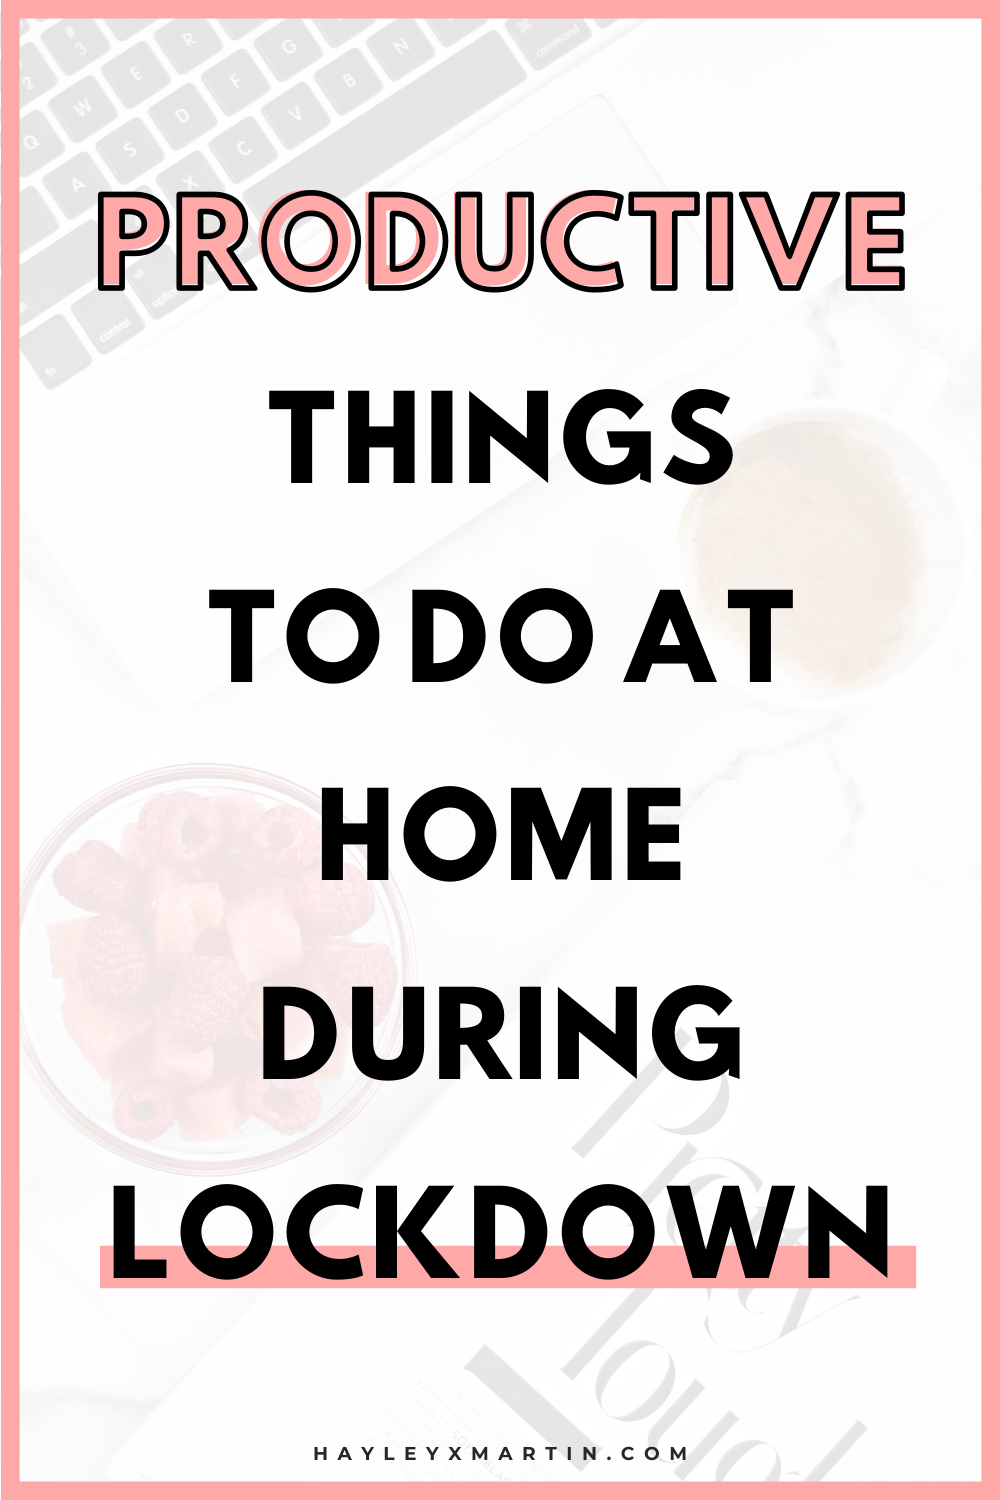 20 PRODUCTIVE THINGS TO DO AT HOME